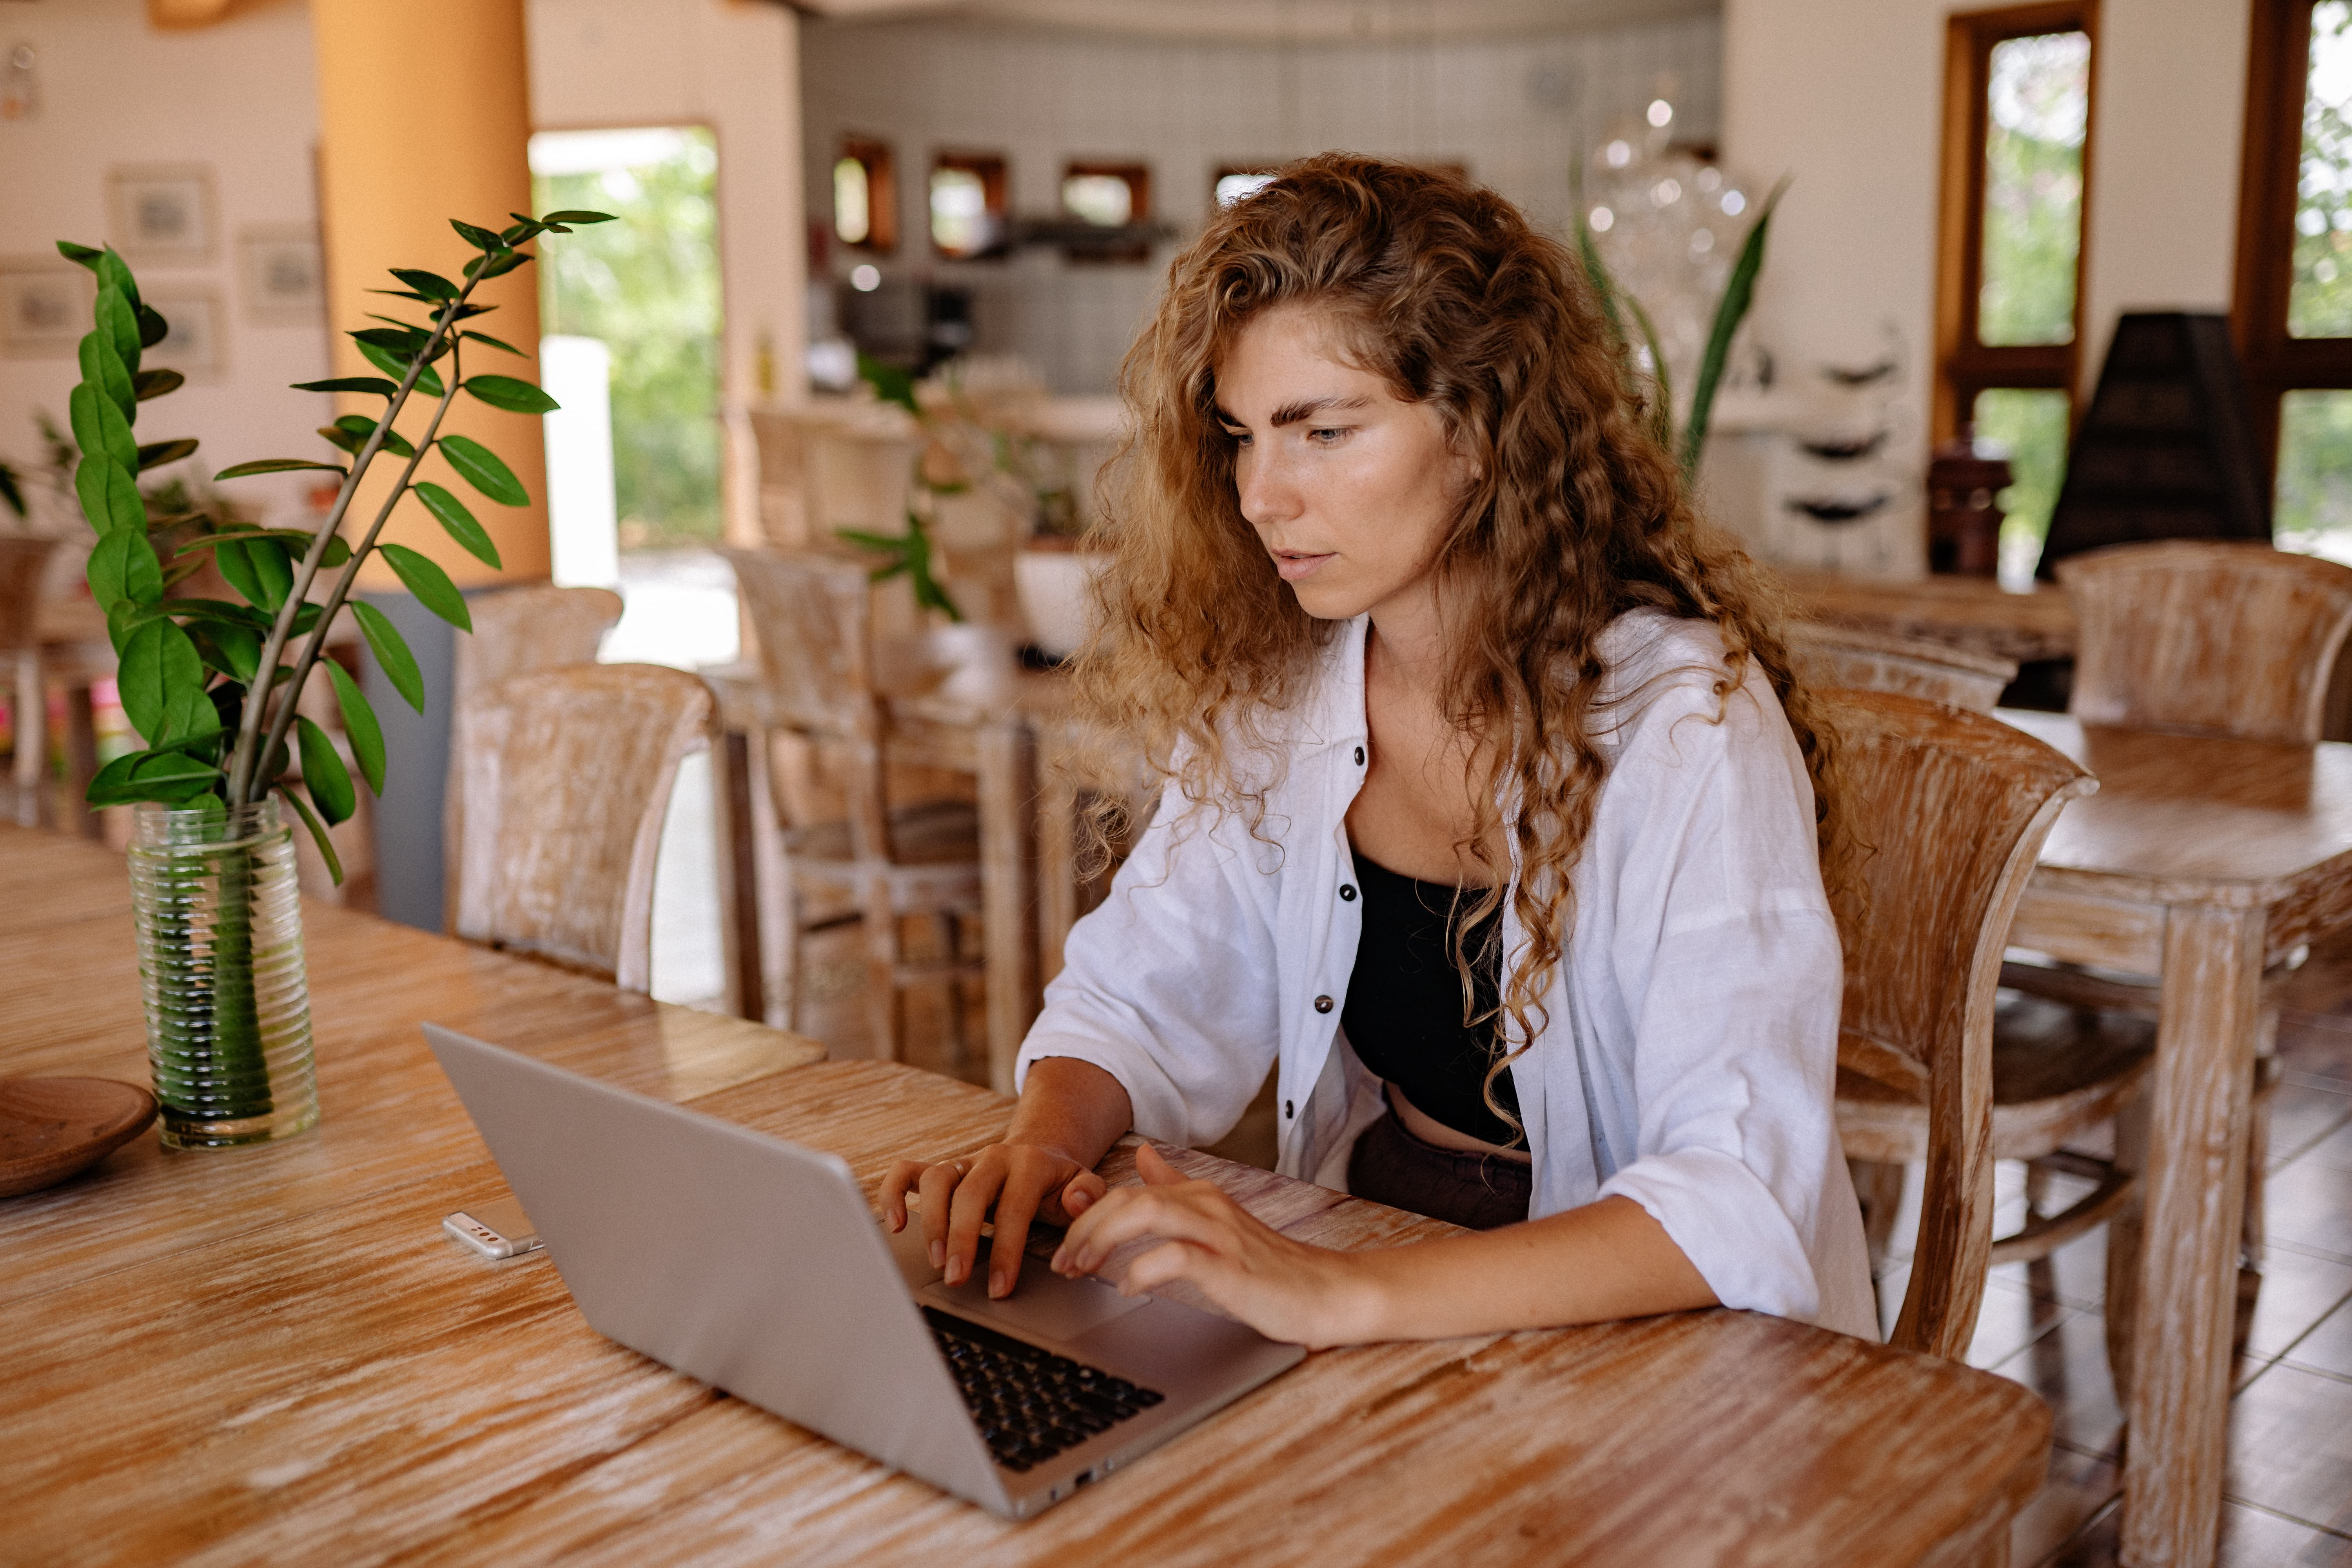 woman sitting at table using a laptop